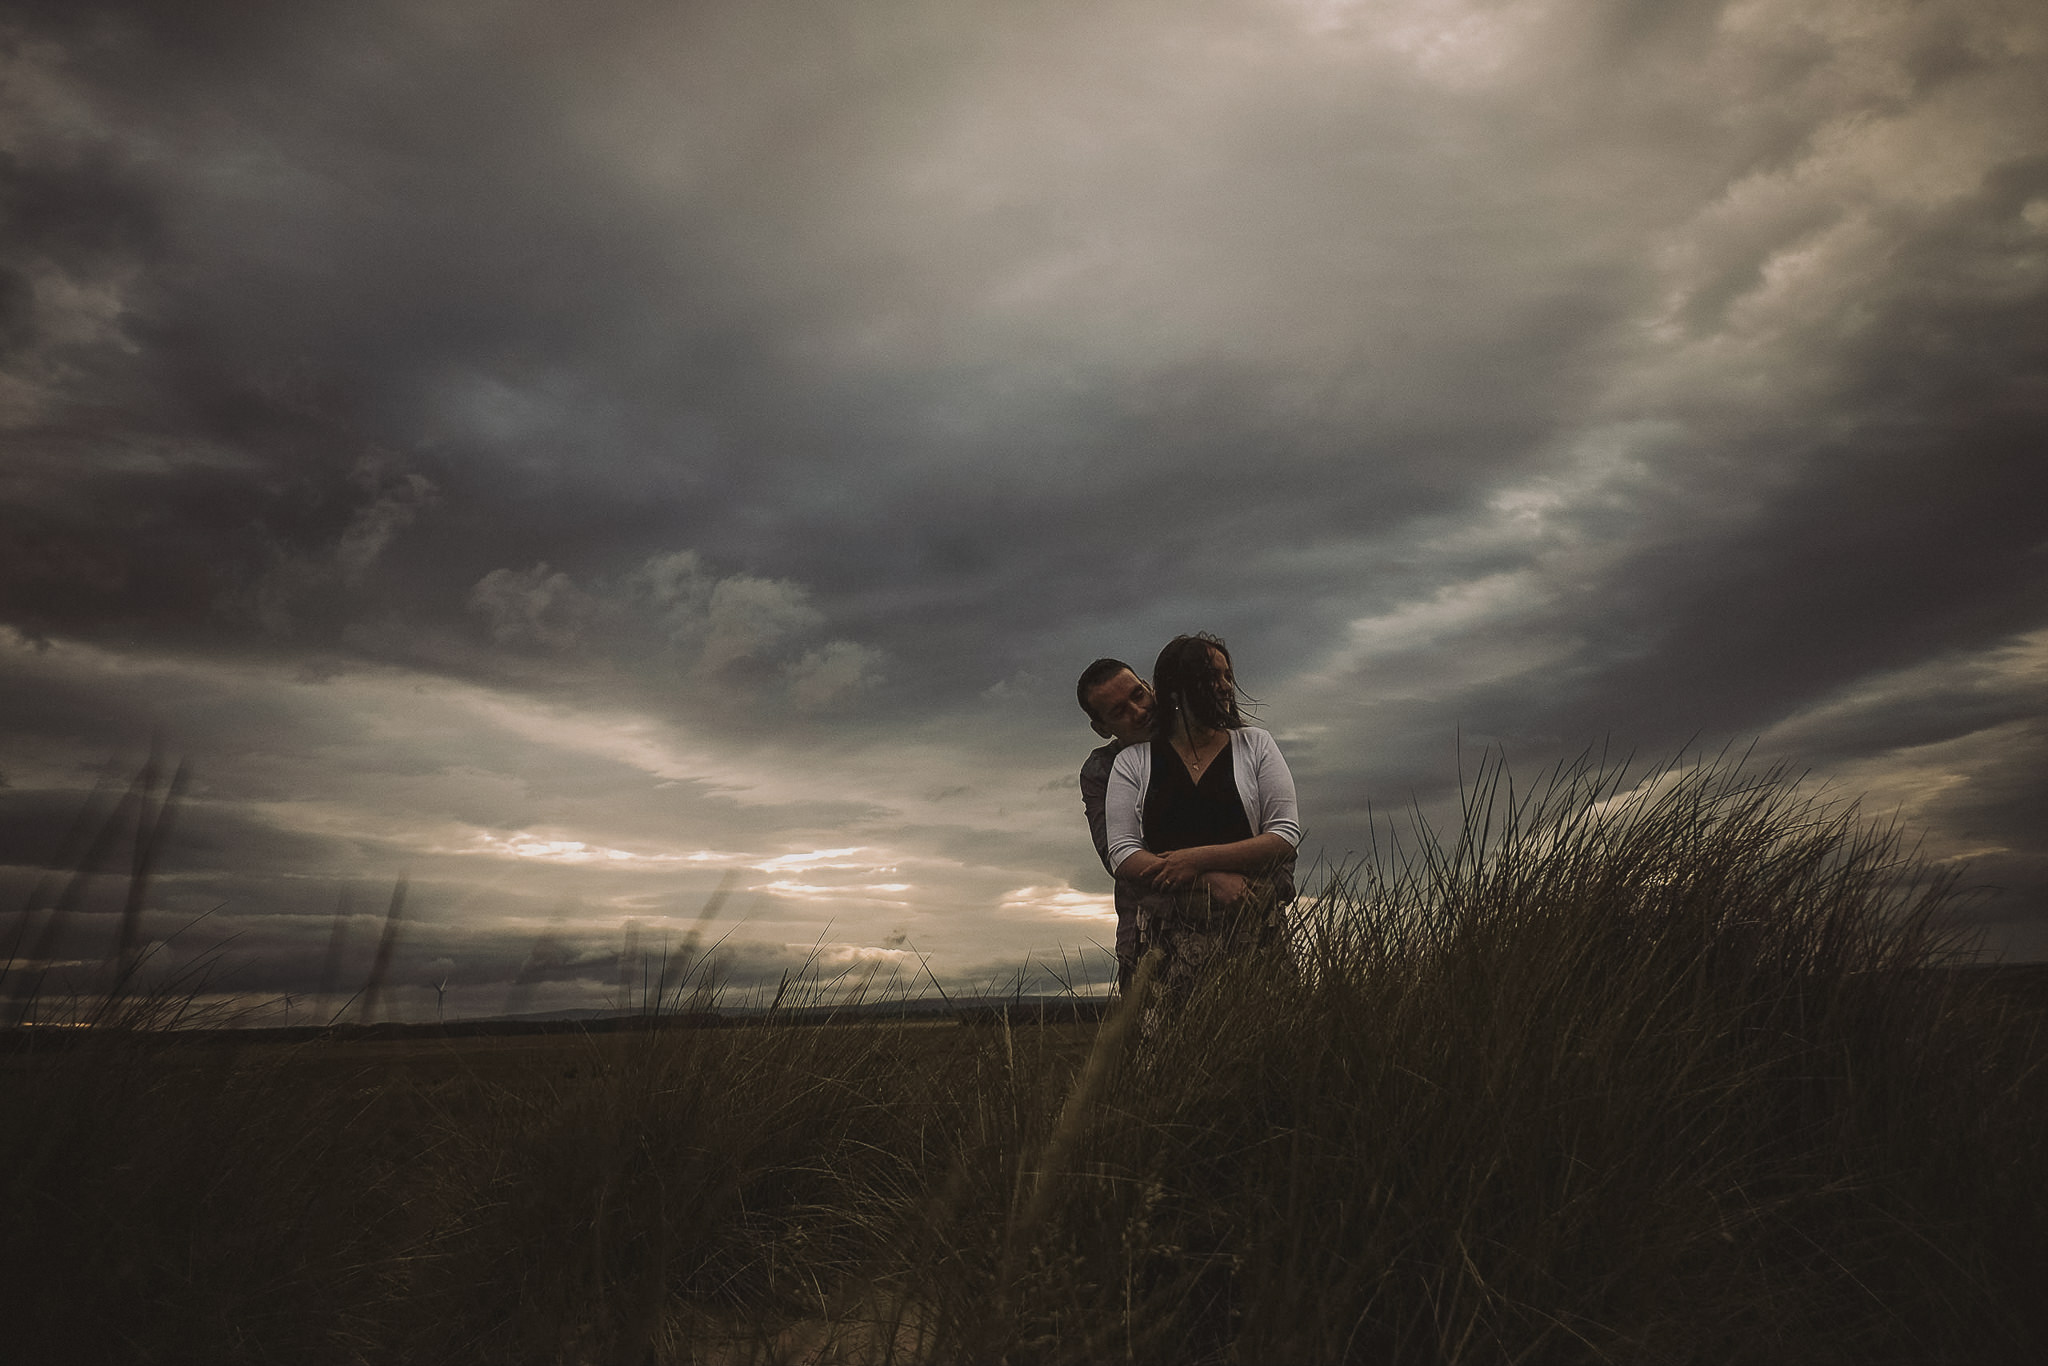 Kyra & Kev embrace beneath a dramatic sky on the Northumberland Coast during their Pre-Wedding engagement photo shoot by Barry Forshaw